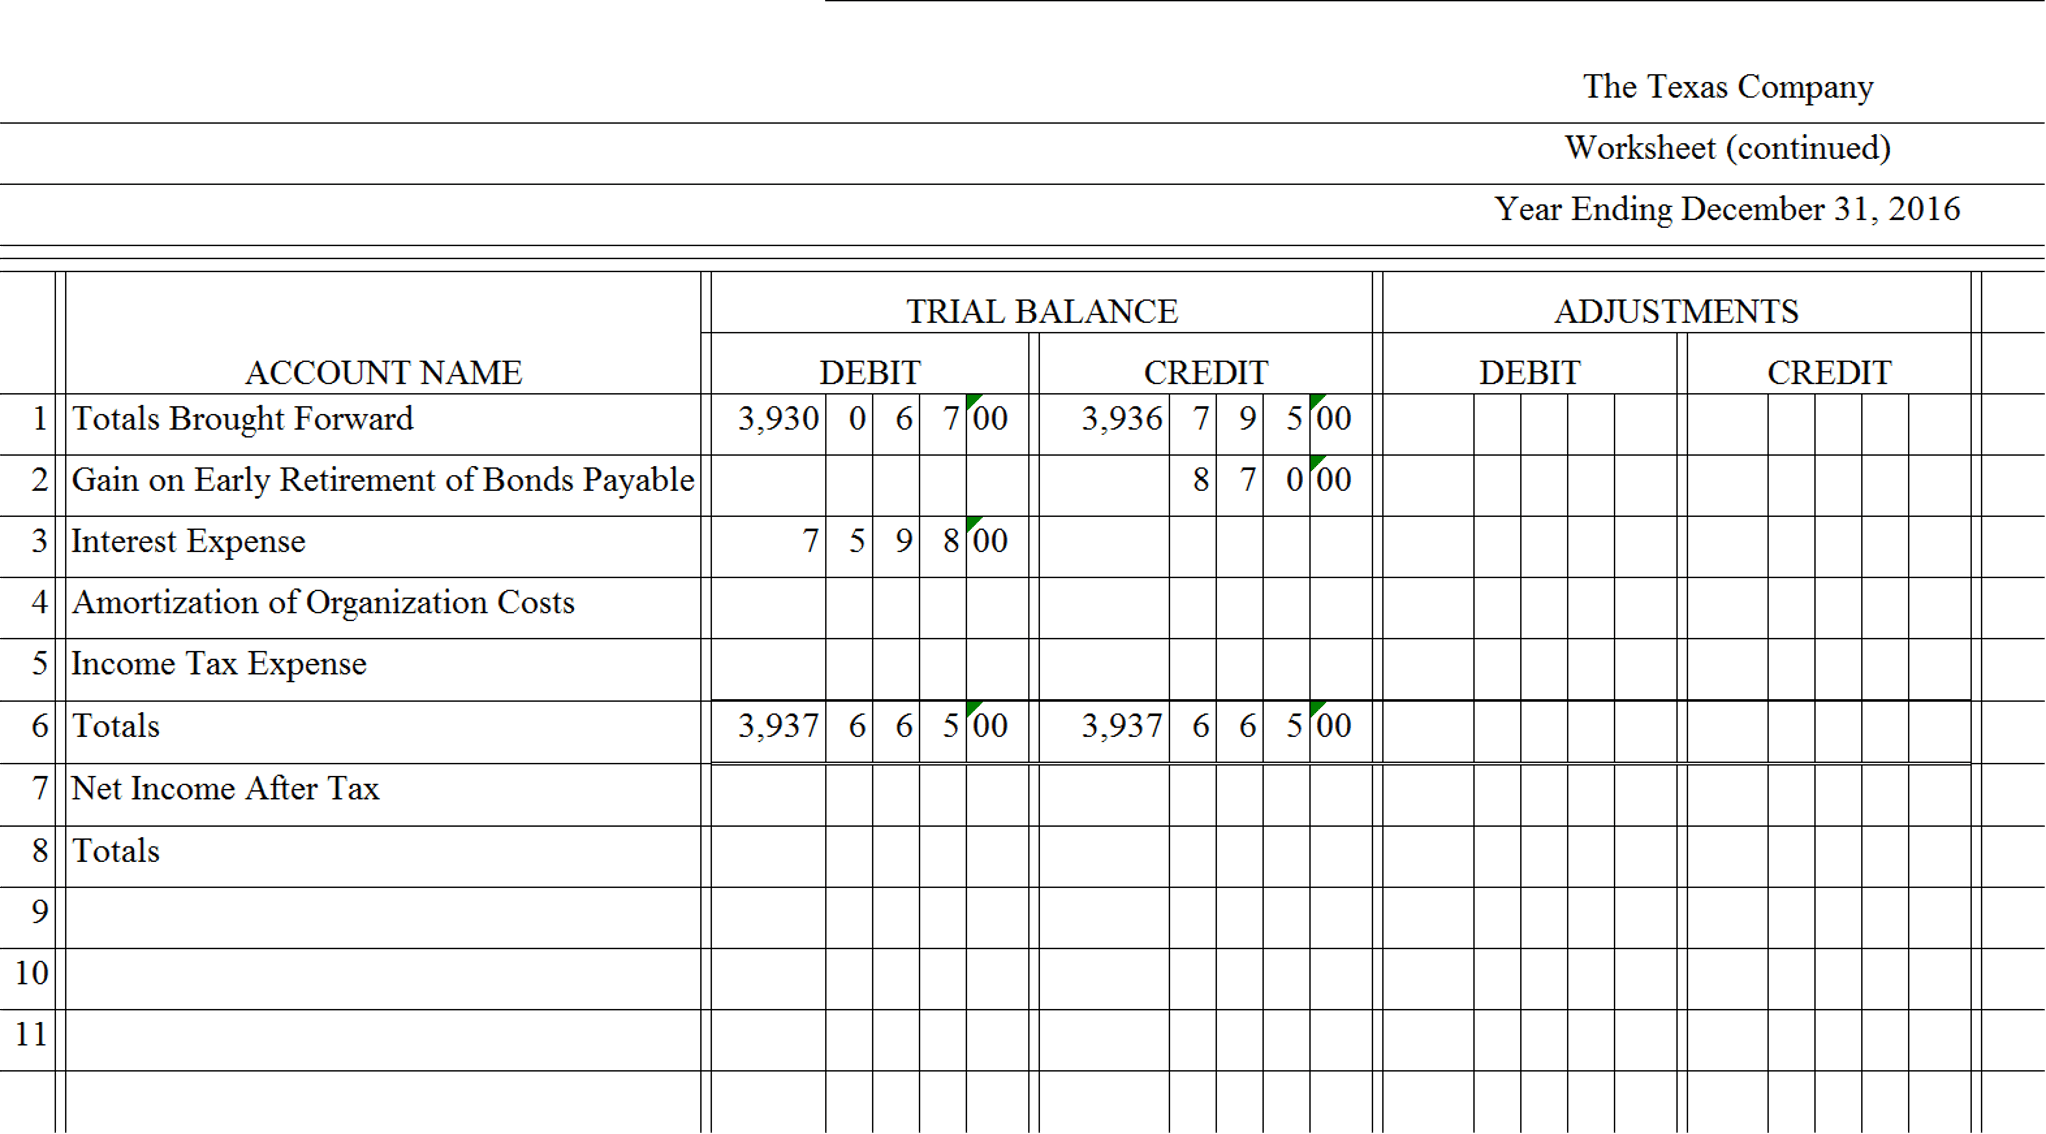 1 Prepare A Worksheet For The Year Ended December